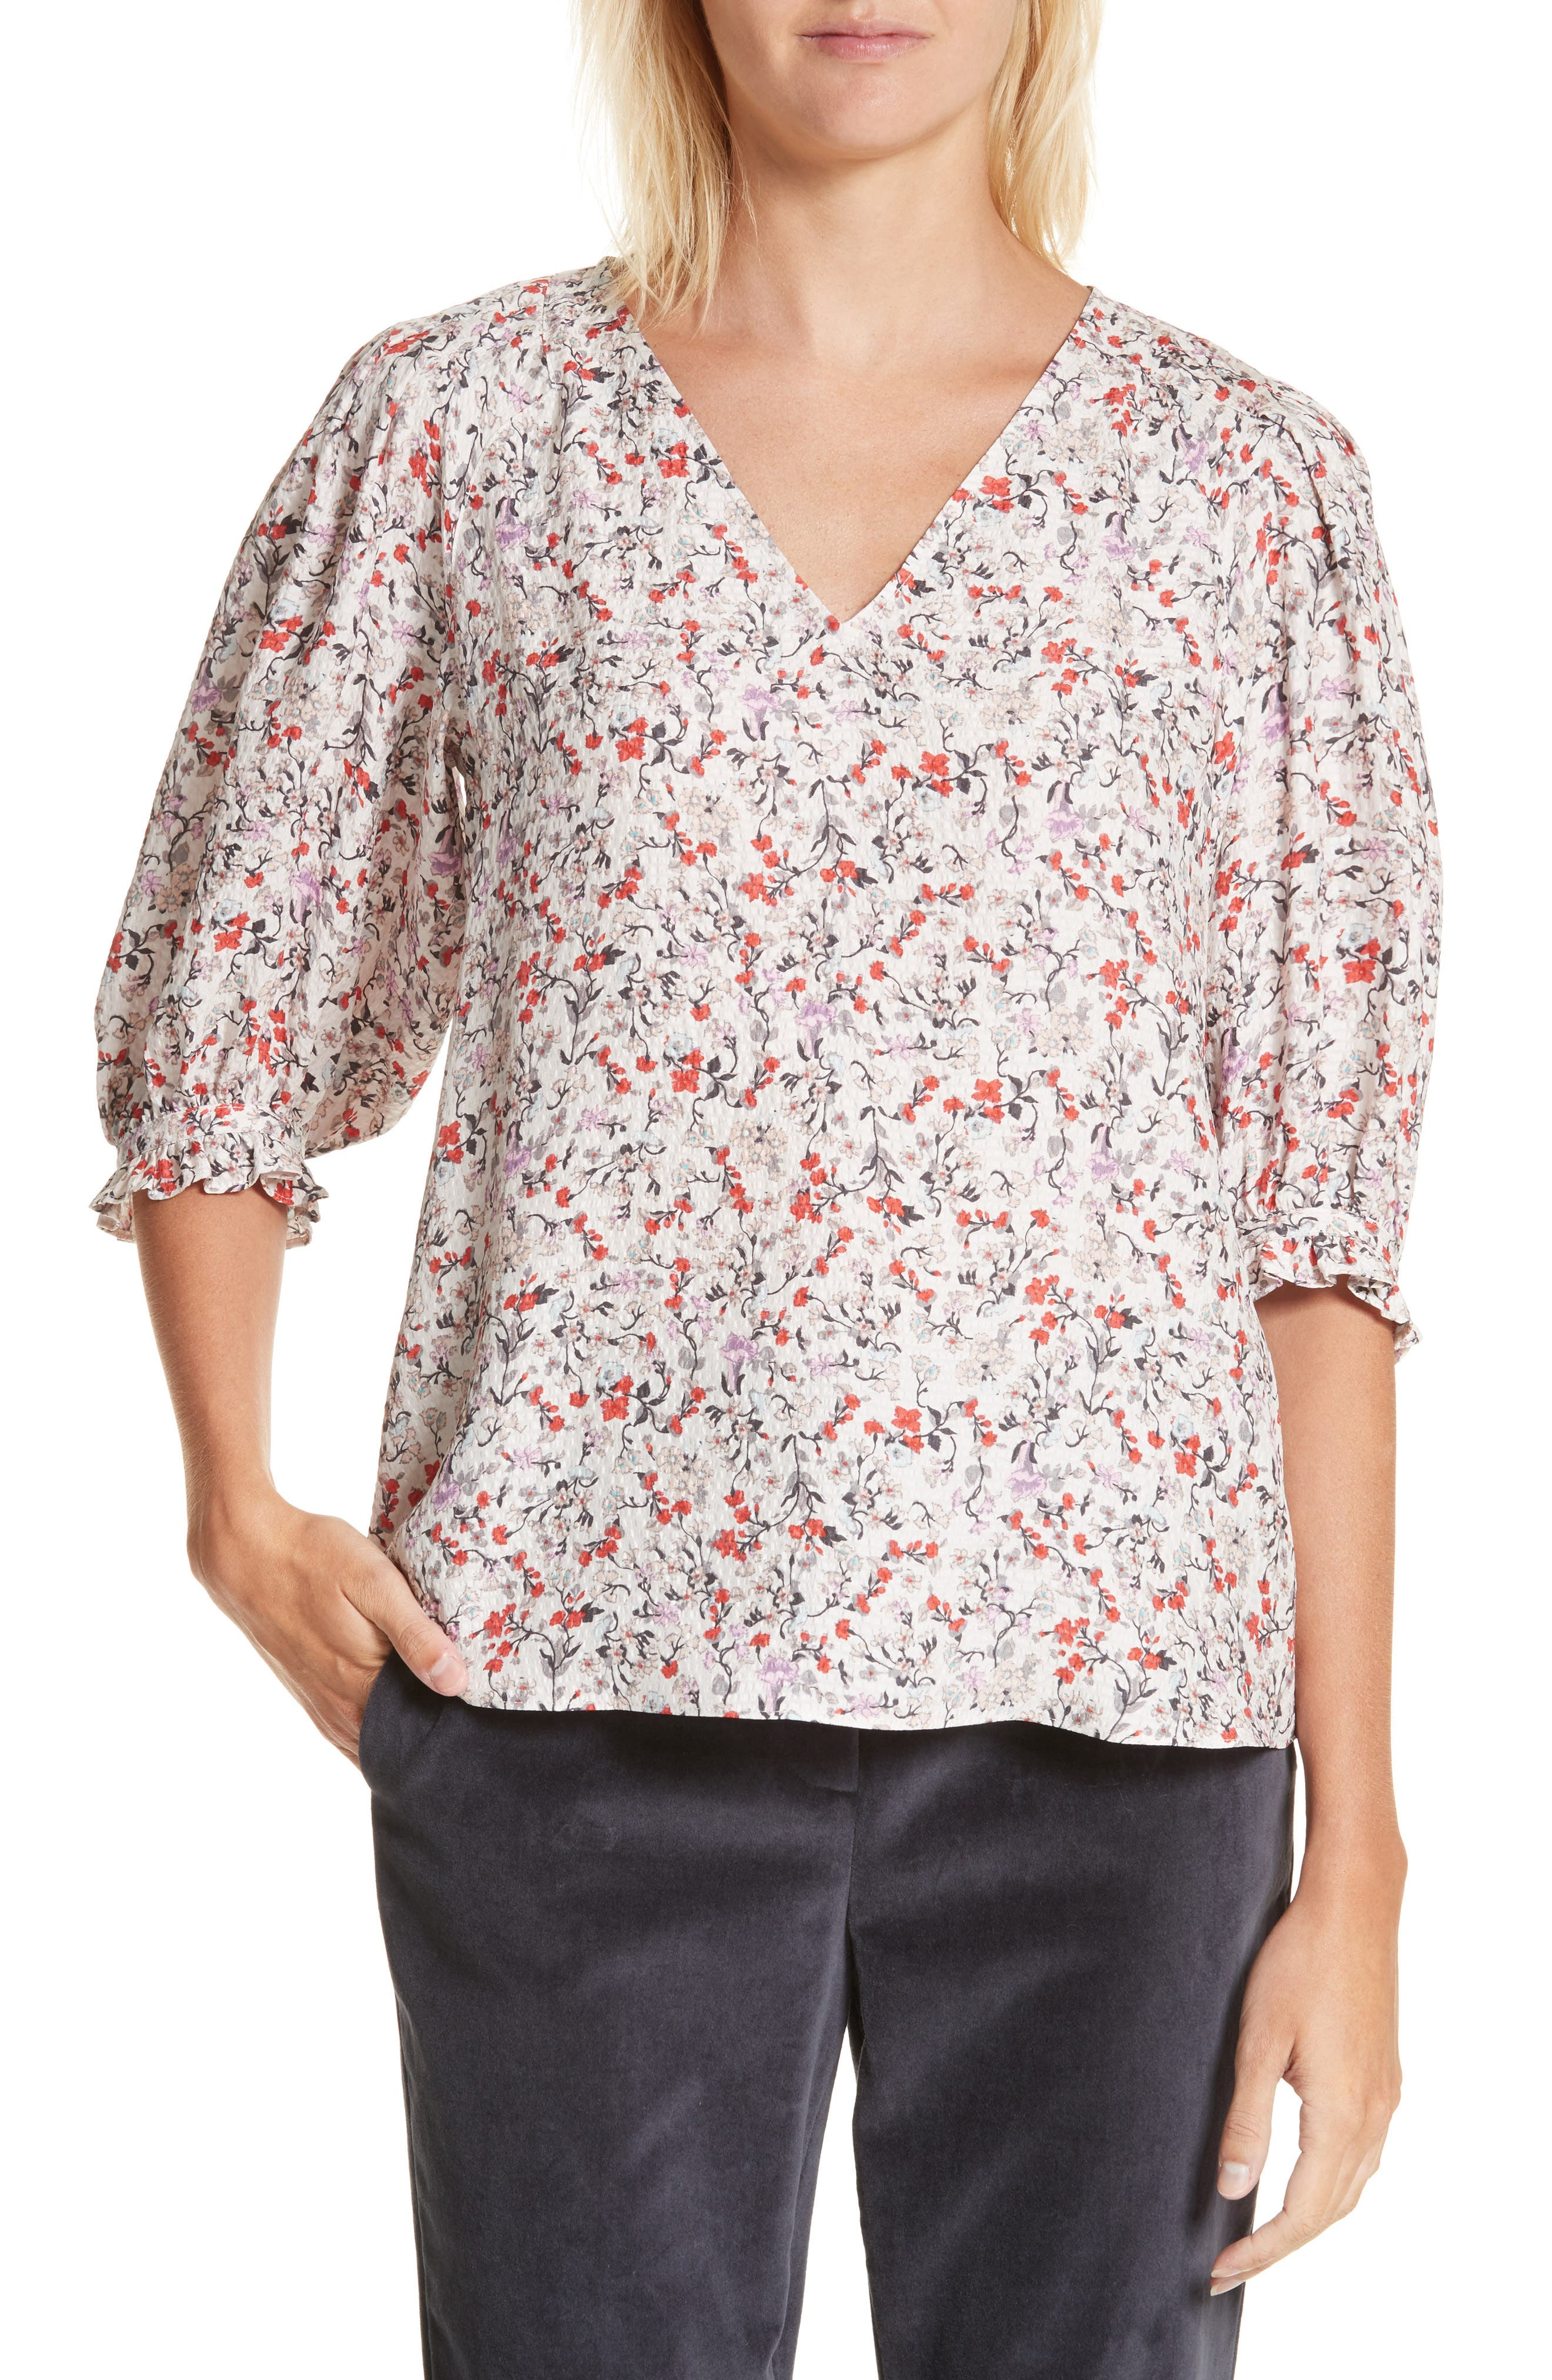 Alternate Image 1 Selected - Rebecca Taylor Lyra Floral Silk Top